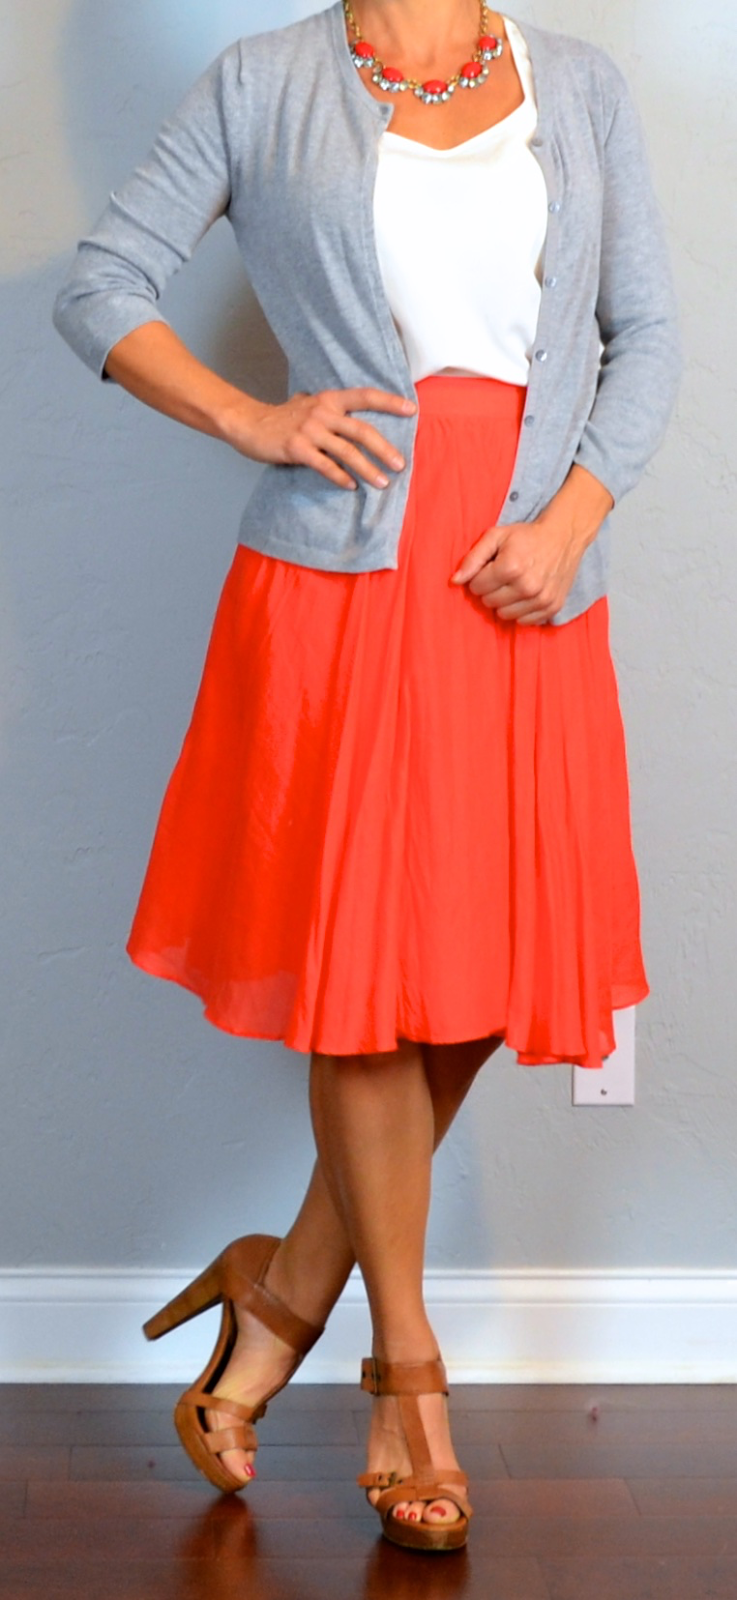 11 Midi Skirt Outfits for This Winter. By Mellisa Geyer | December 17, Red Midi Skirt Outfit. Source. This outfit is a perfect choice for holiday glam. You can't go wrong with red and black, right? This red skirt has enough color and volume to stand out on its own. Just match it with red lips or nails.